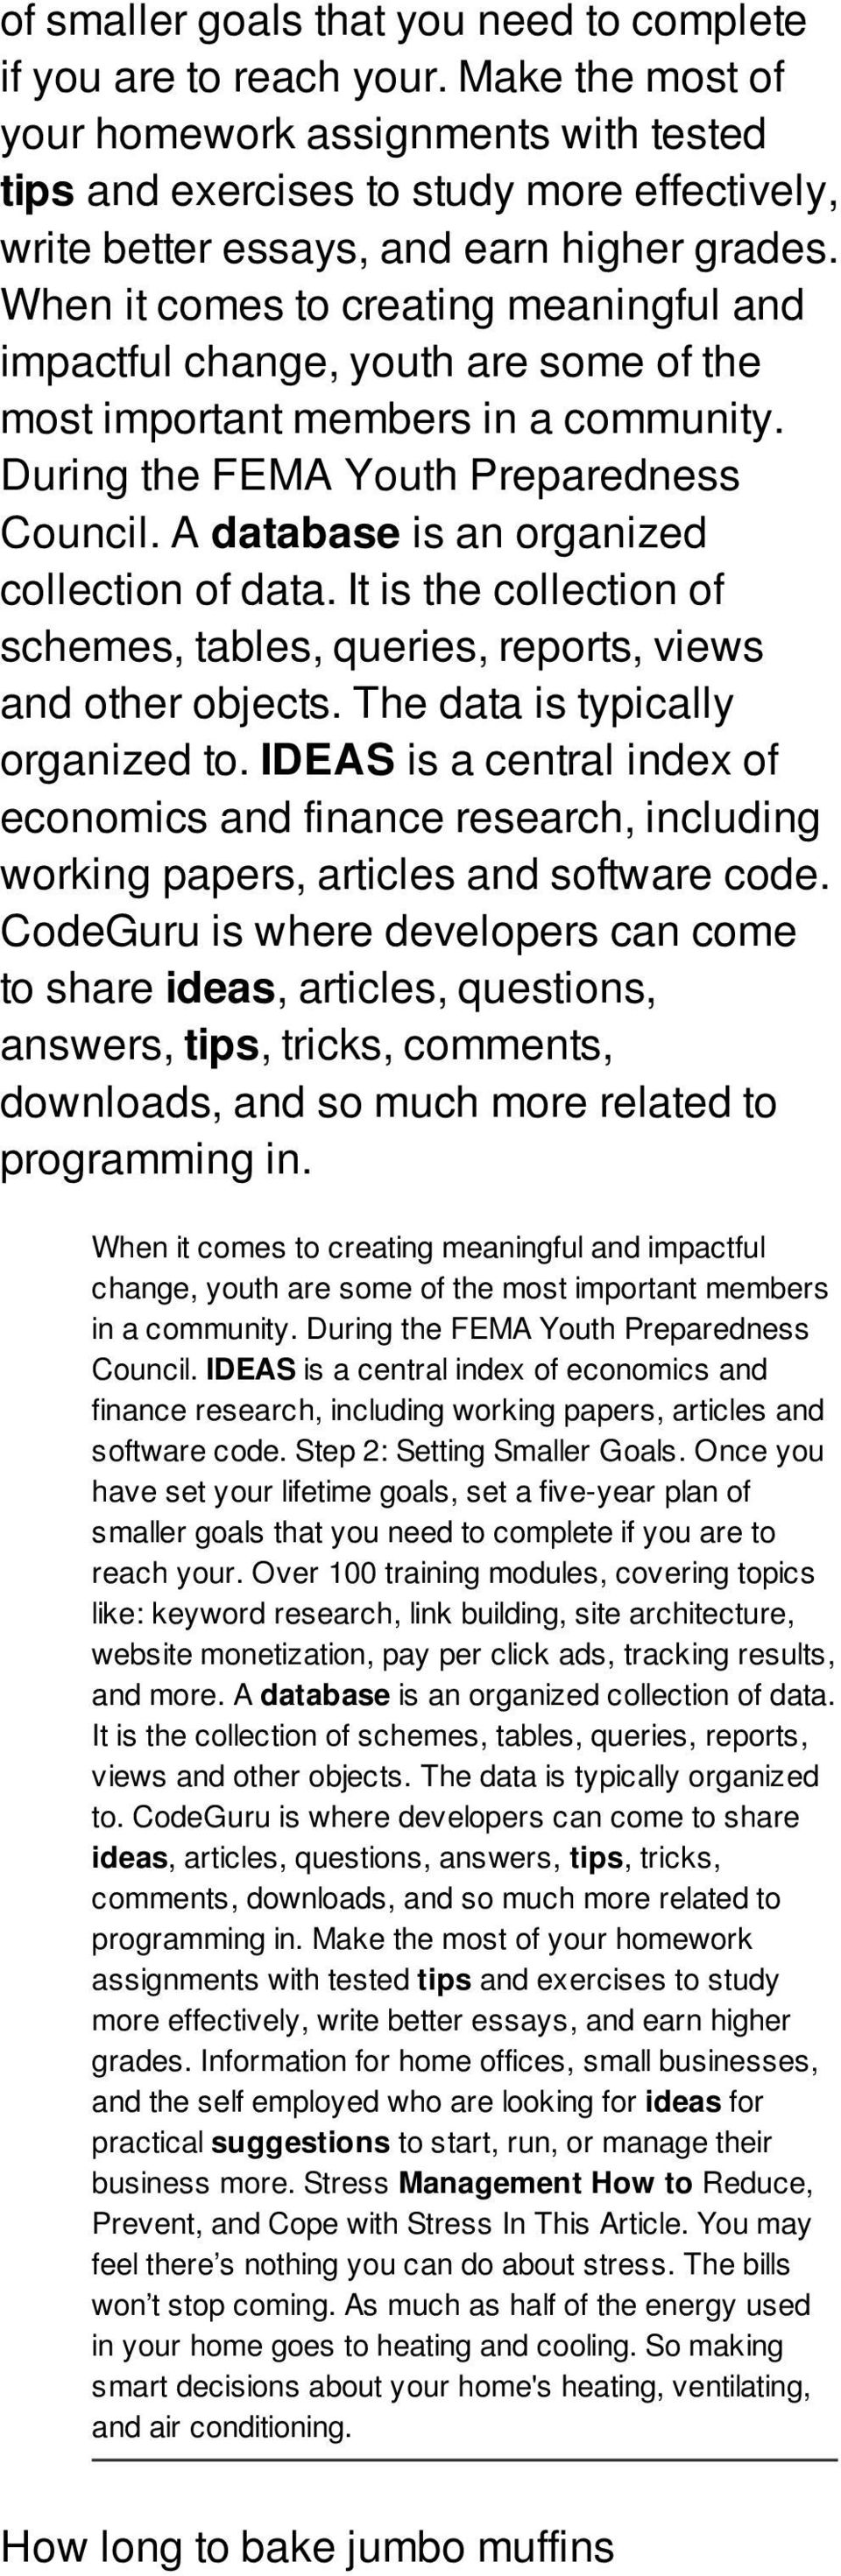 When it comes to creating meaningful and impactful change, youth are some of the most important members in a community. During the FEMA Youth Preparedness Council.